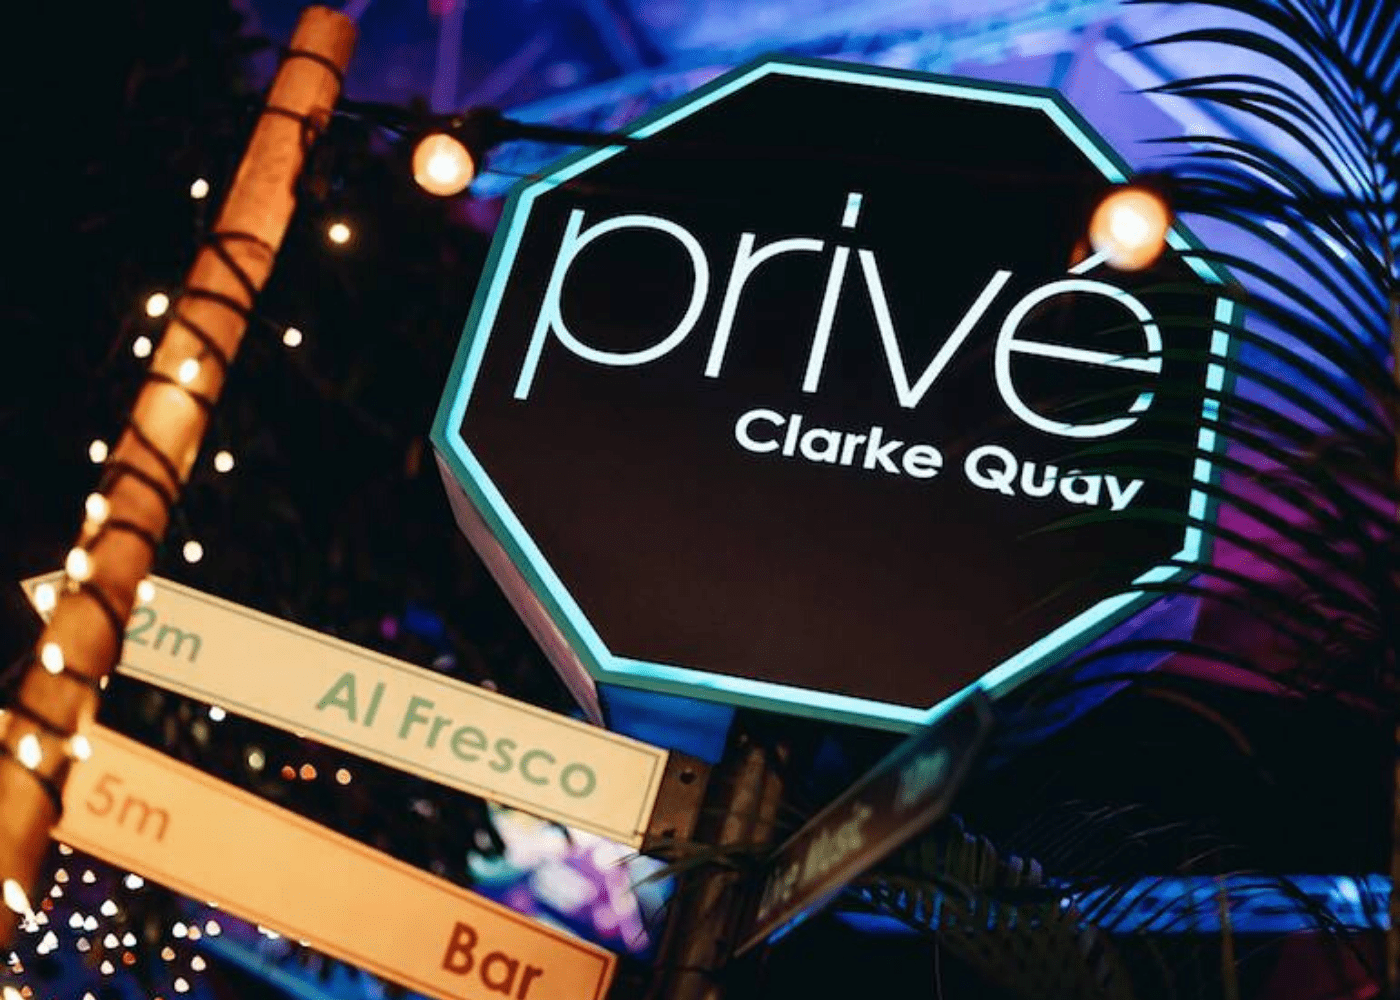 prive clarke quay mums night out